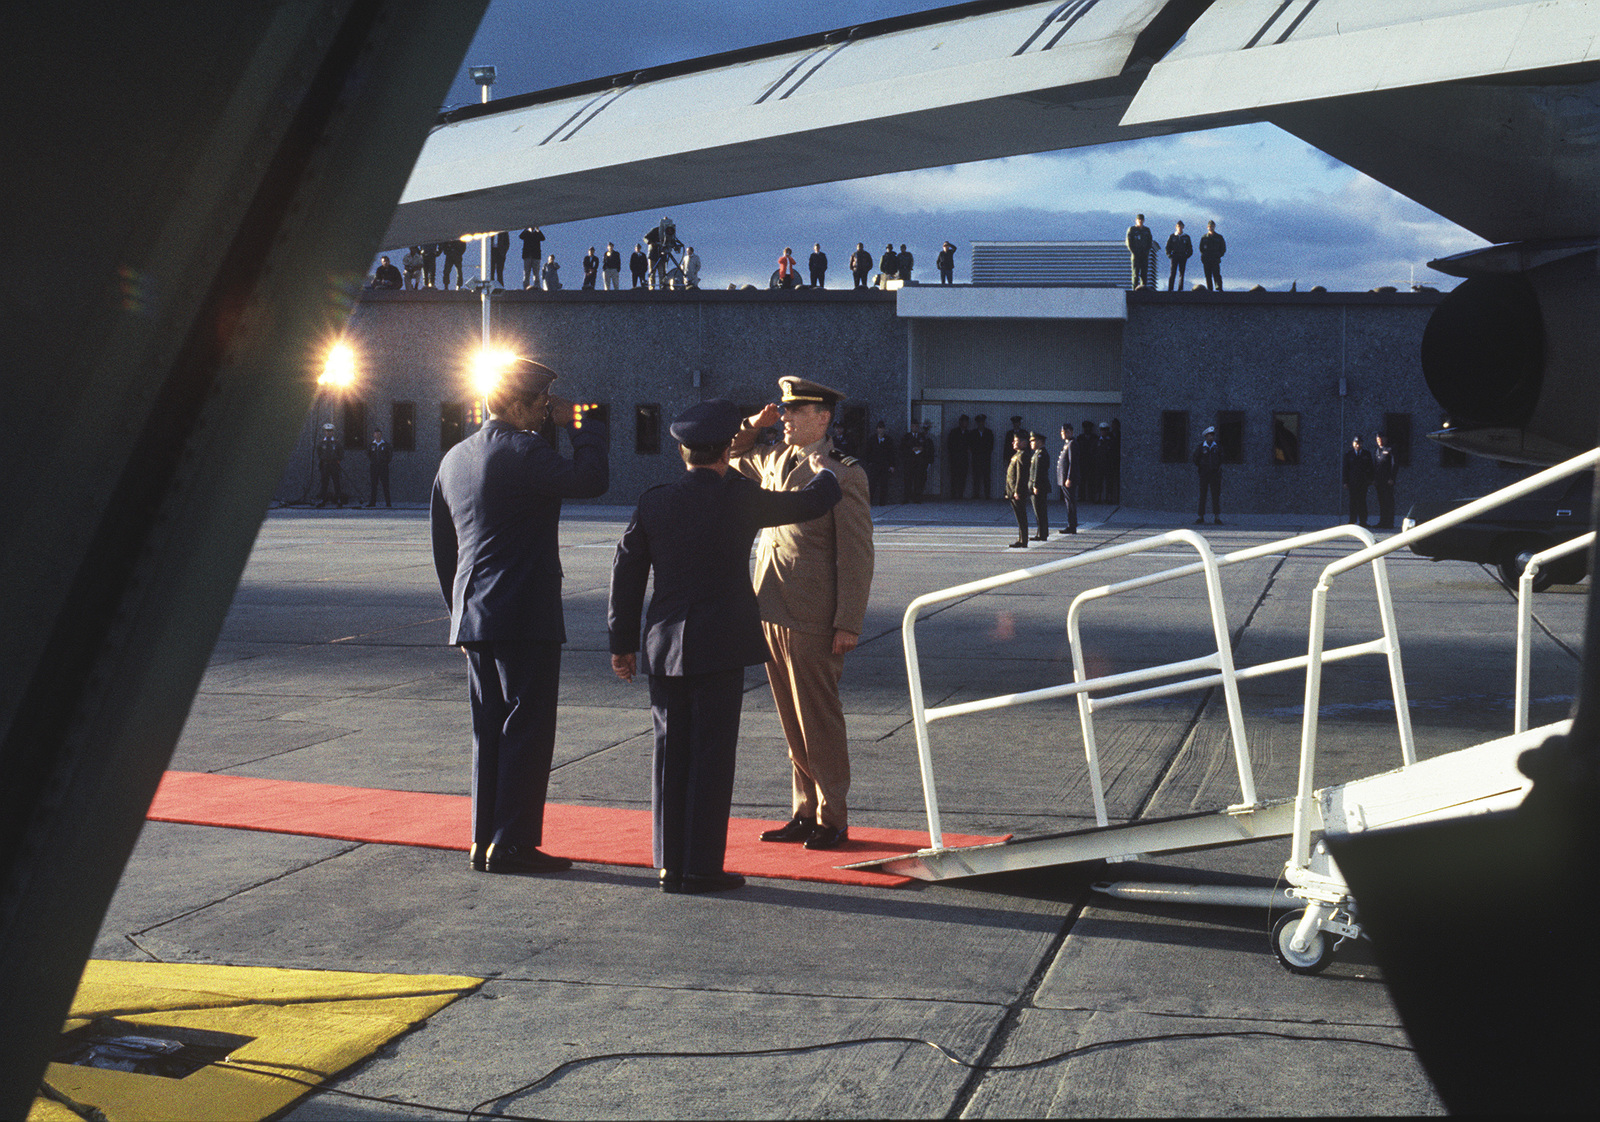 """Released Prisoner of War, U.S. Navy LT CMDR Larry Howard Spencer, (Captured 18 Feb 66)) salutes MGEN John Gonge, 22nd Air Force Commander and MGEN Daniel """"Chappie"""" James upon his arrival at Travis Air Force Base. LT CMDR Spencer was in the third group released by the North Vietnamese on Feb 12, 1973 in Hanoi"""